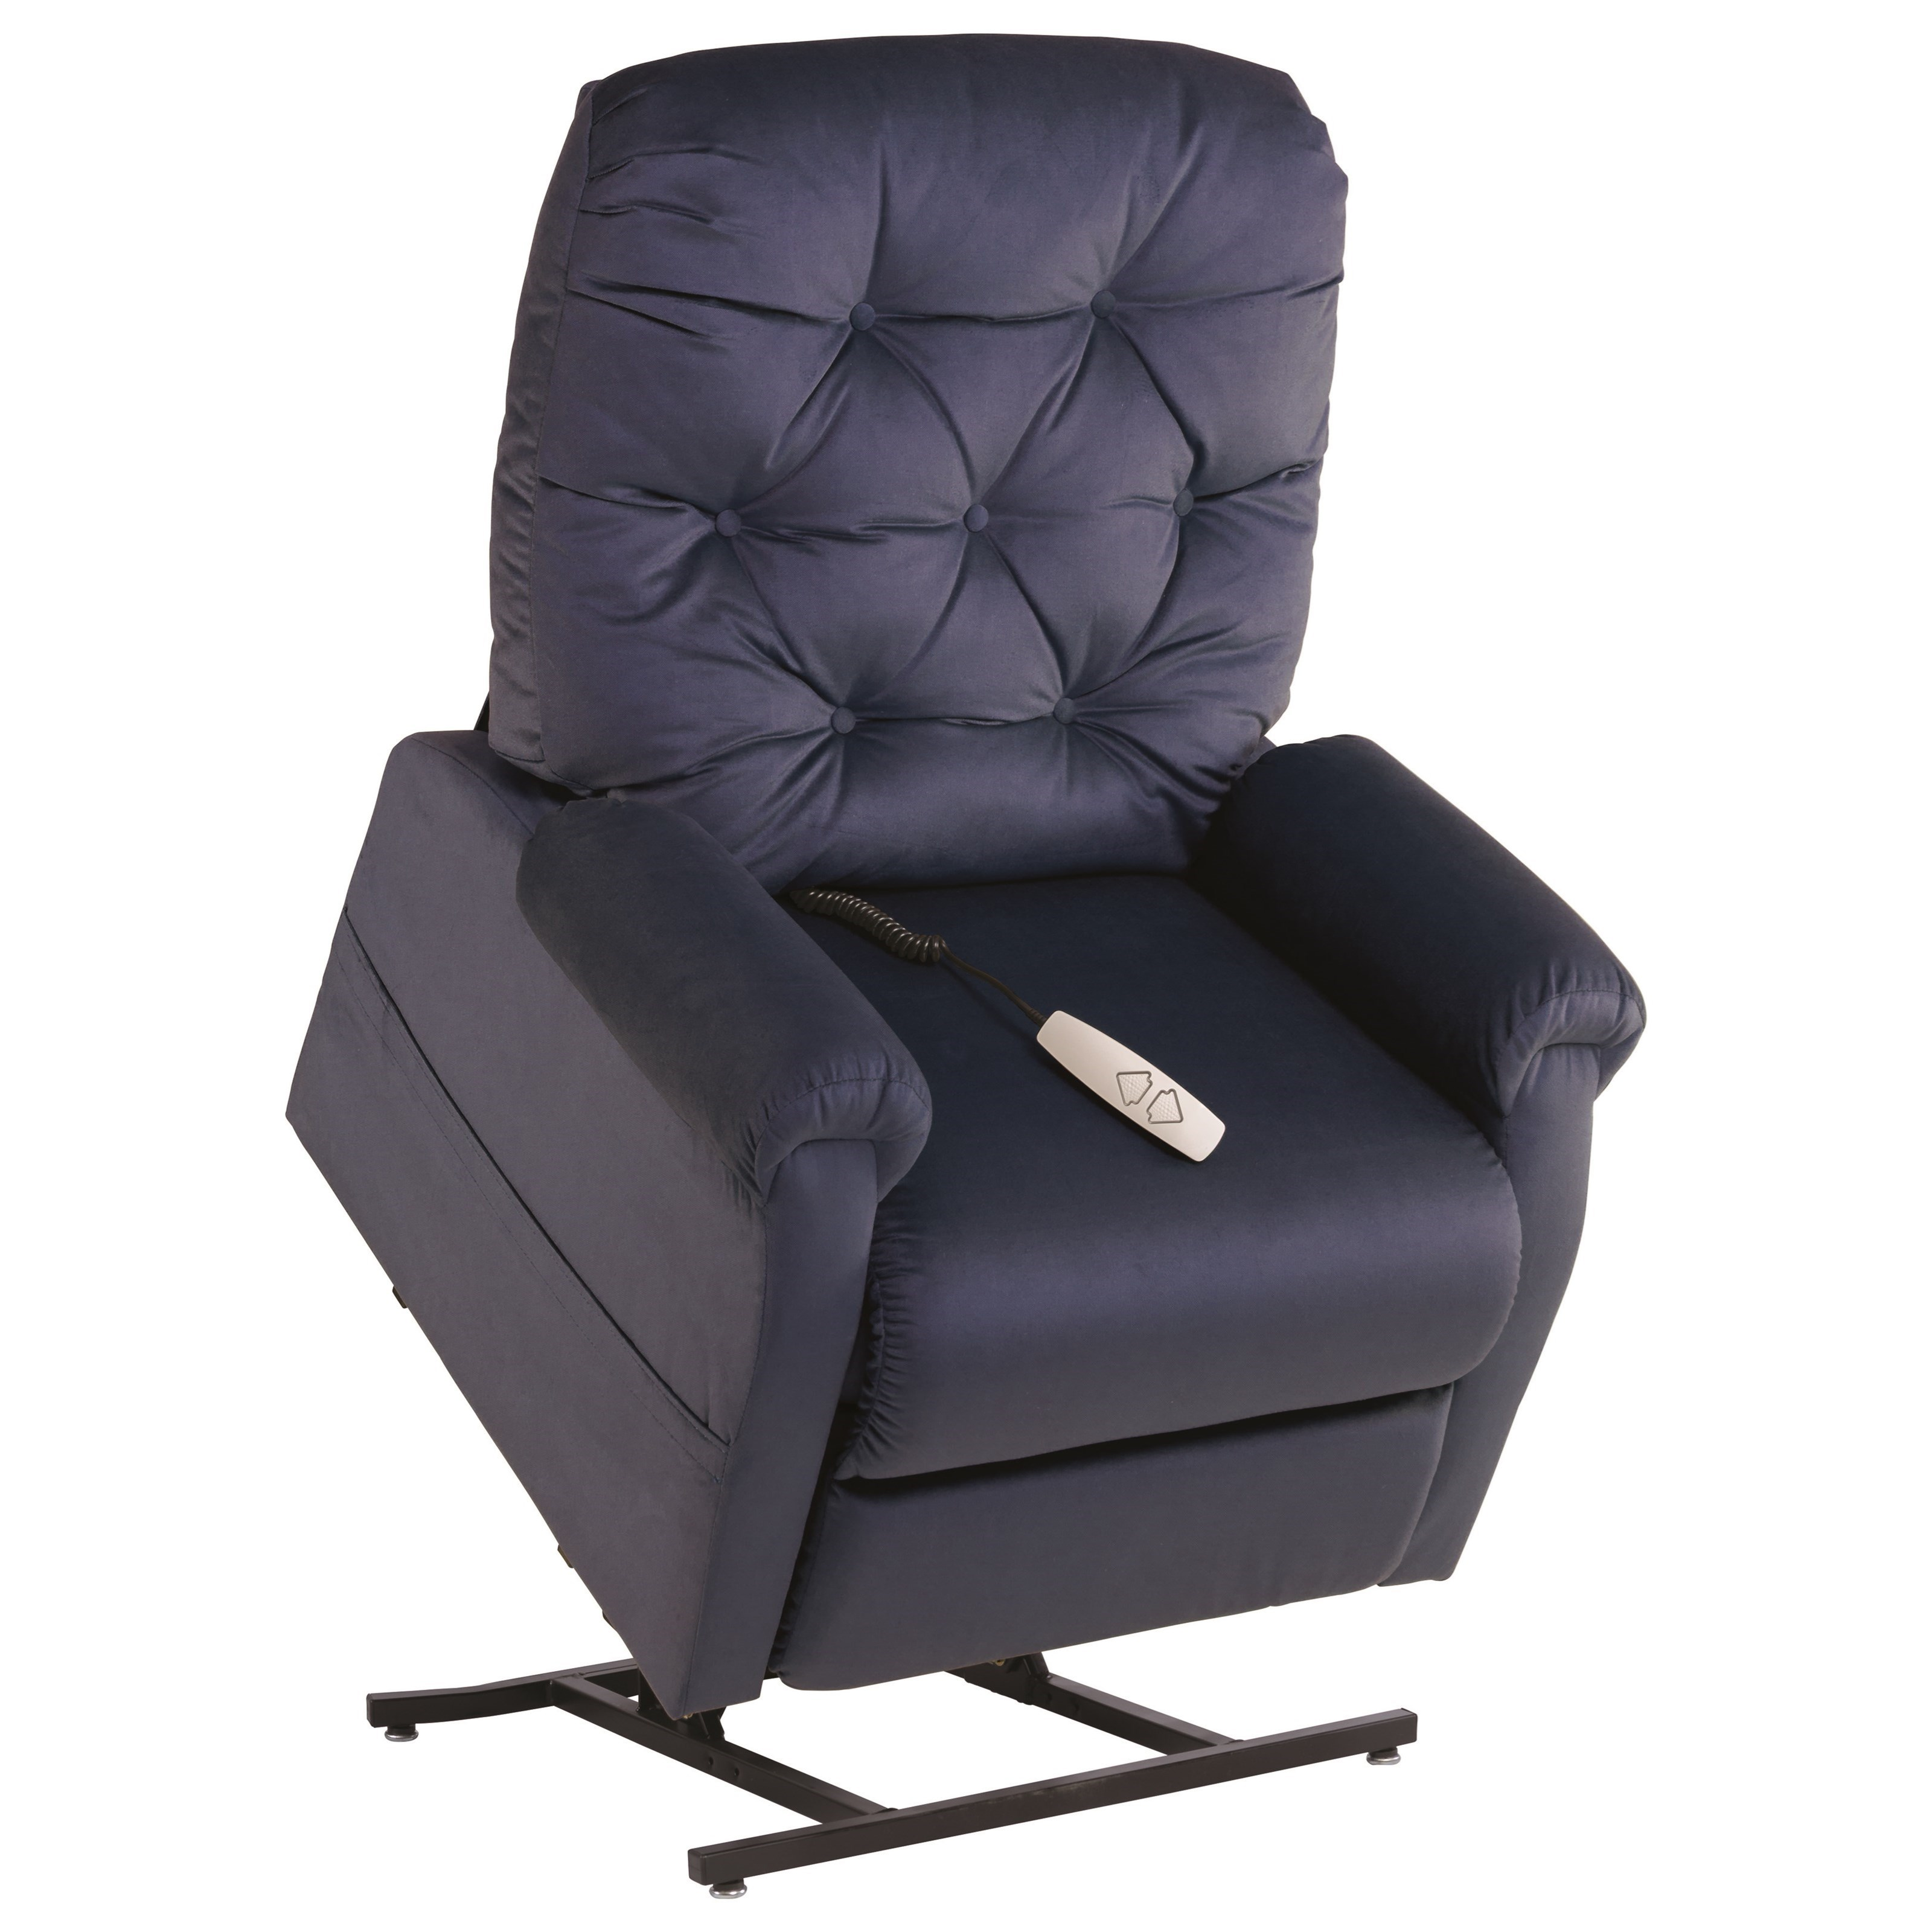 Lift Chairs 3-Position Reclining Chaise Lounger by Windermere Motion at Lapeer Furniture & Mattress Center